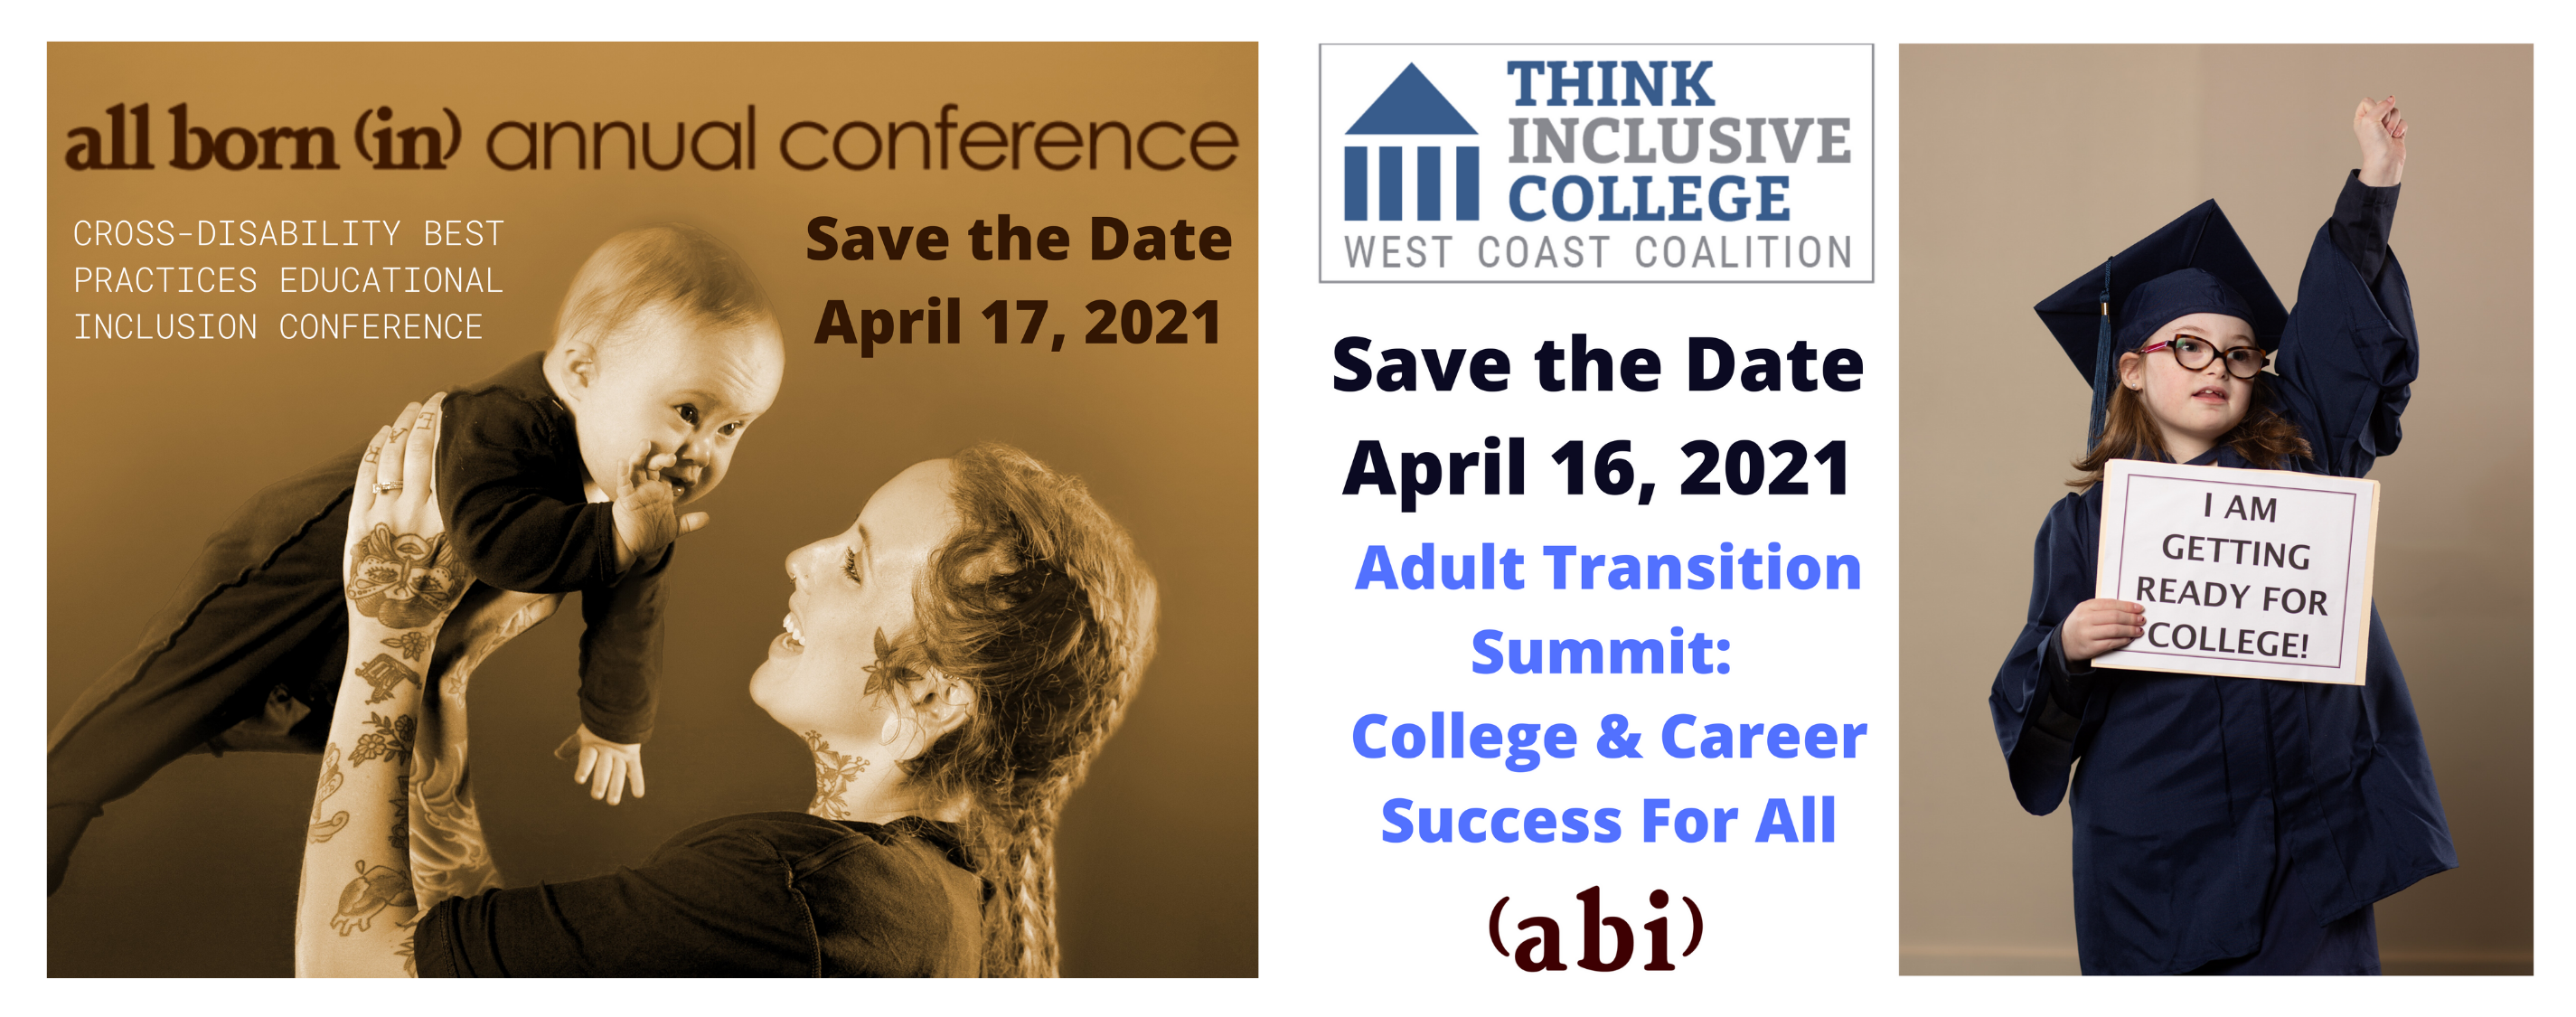 Our 2020 All Born (in) Conference and Master Session have been canceled